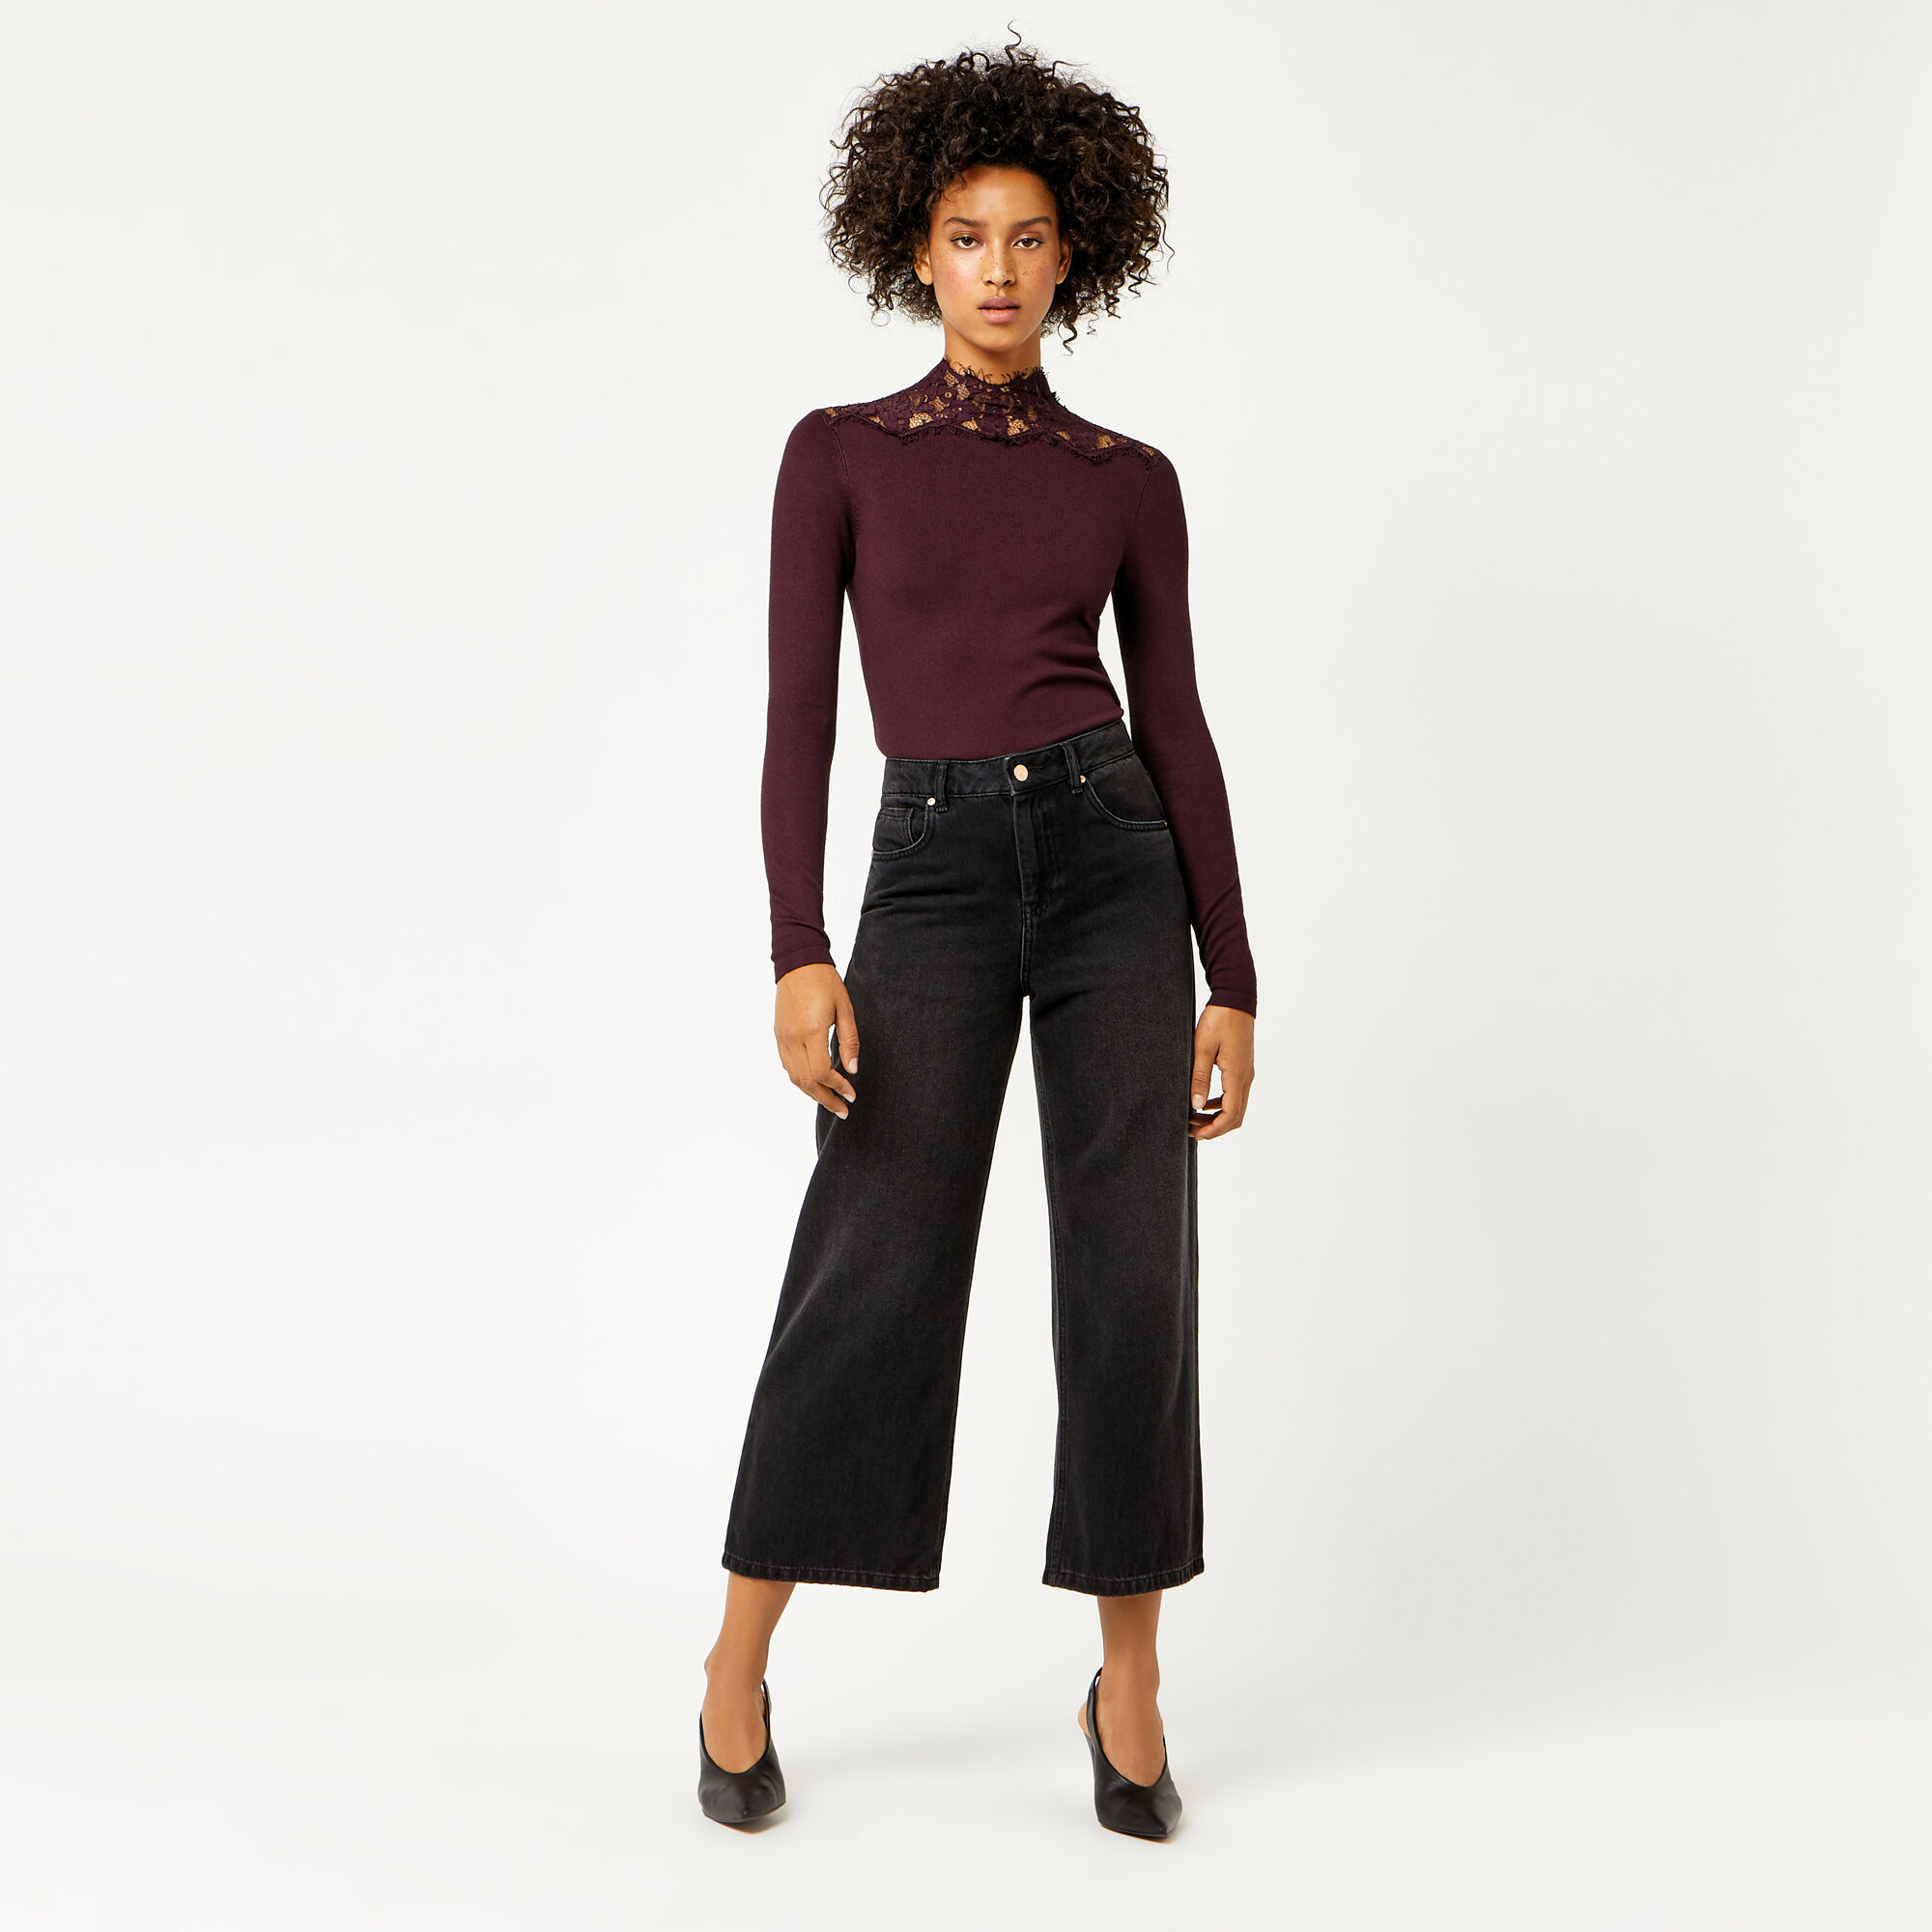 Warehouse, LACE HIGH NECK JUMPER Berry 1